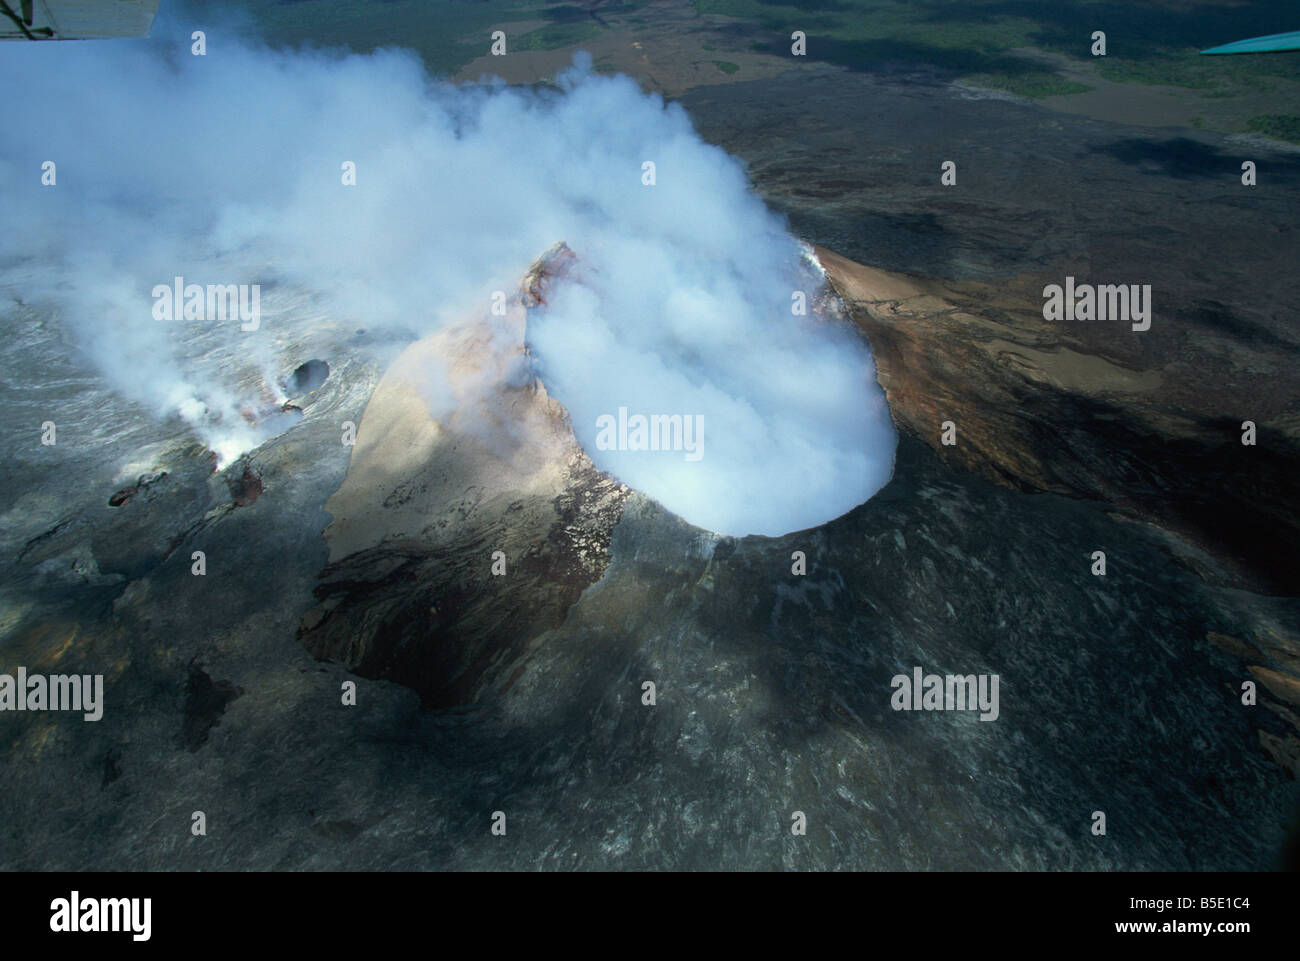 The Pu'u O'o cinder cone, Kilauea volcano, Big Island, Hawaii, Hawaiian Islands - Stock Image